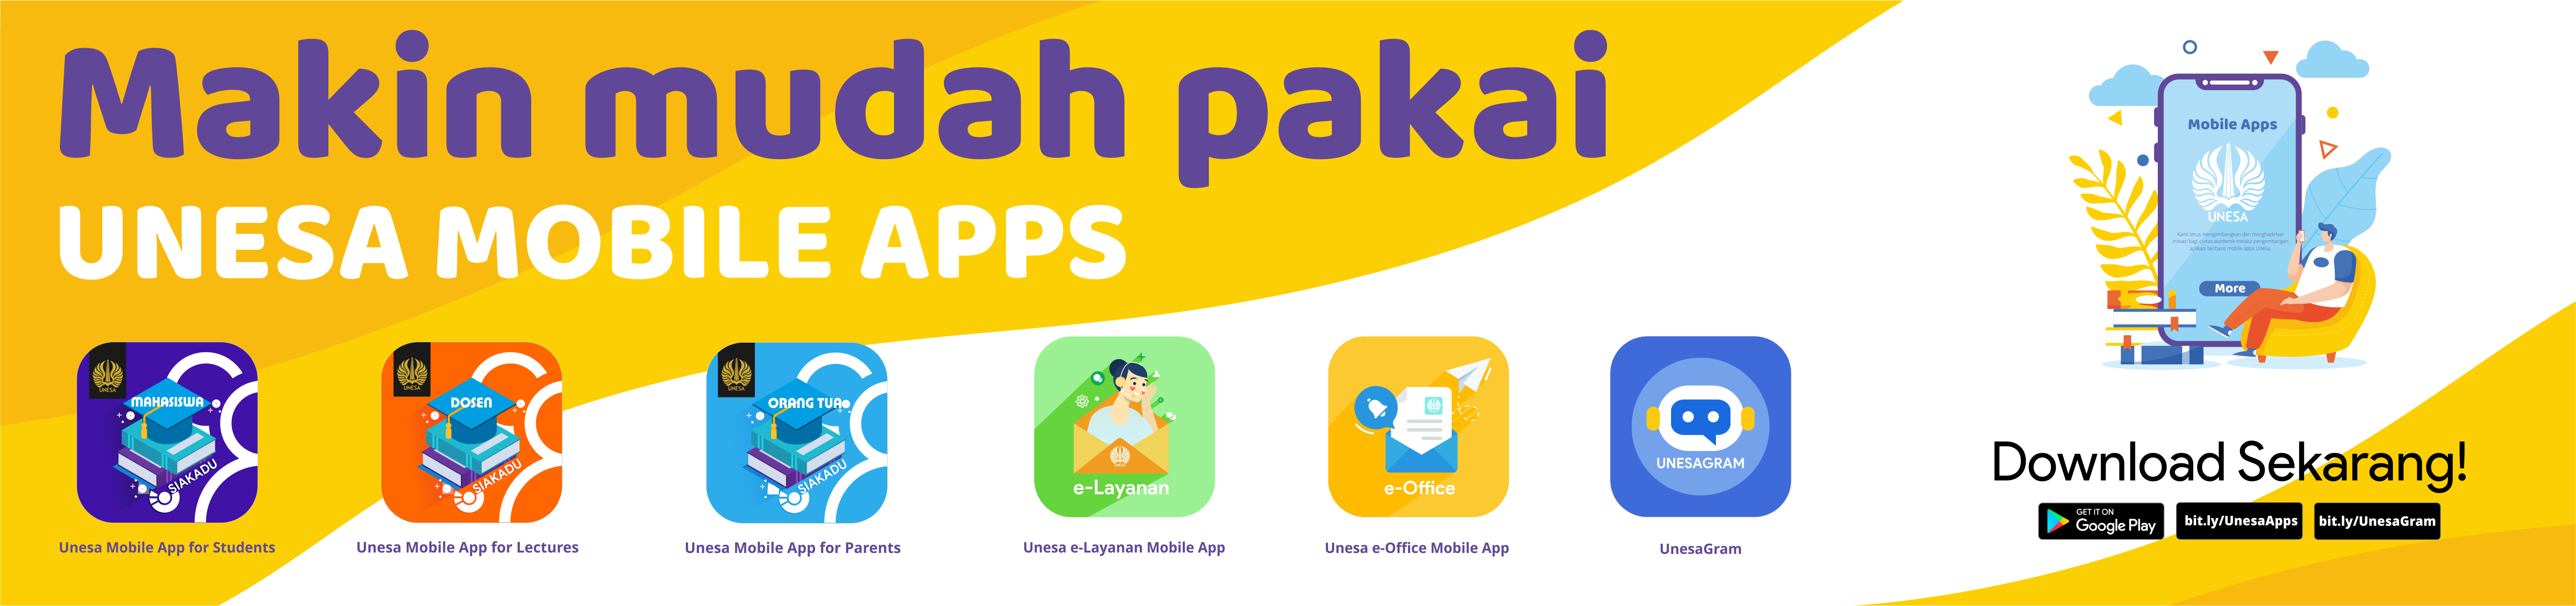 UNESA-MOBILE-APPS-new-1-2